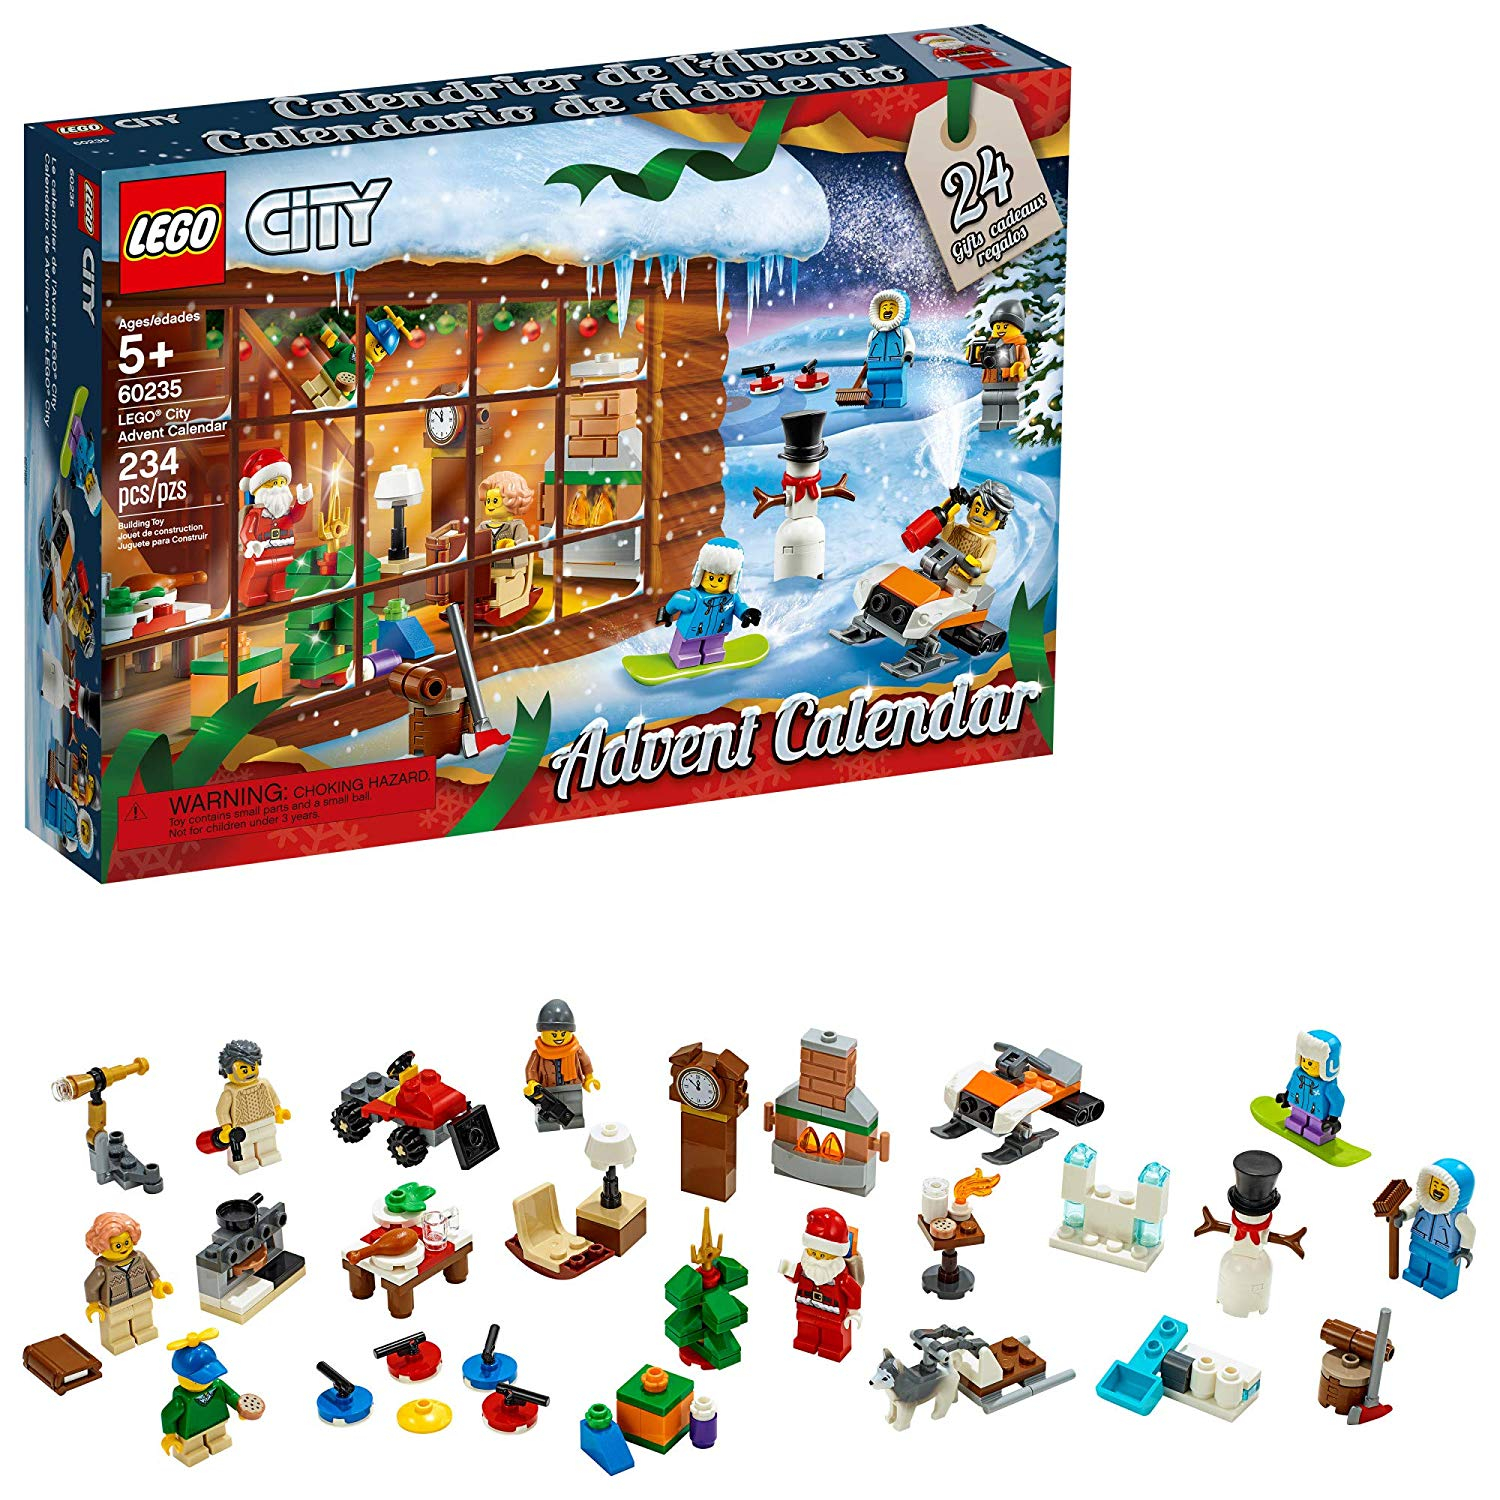 new this year lego city advent calendar building kit new 2019 234 pieces